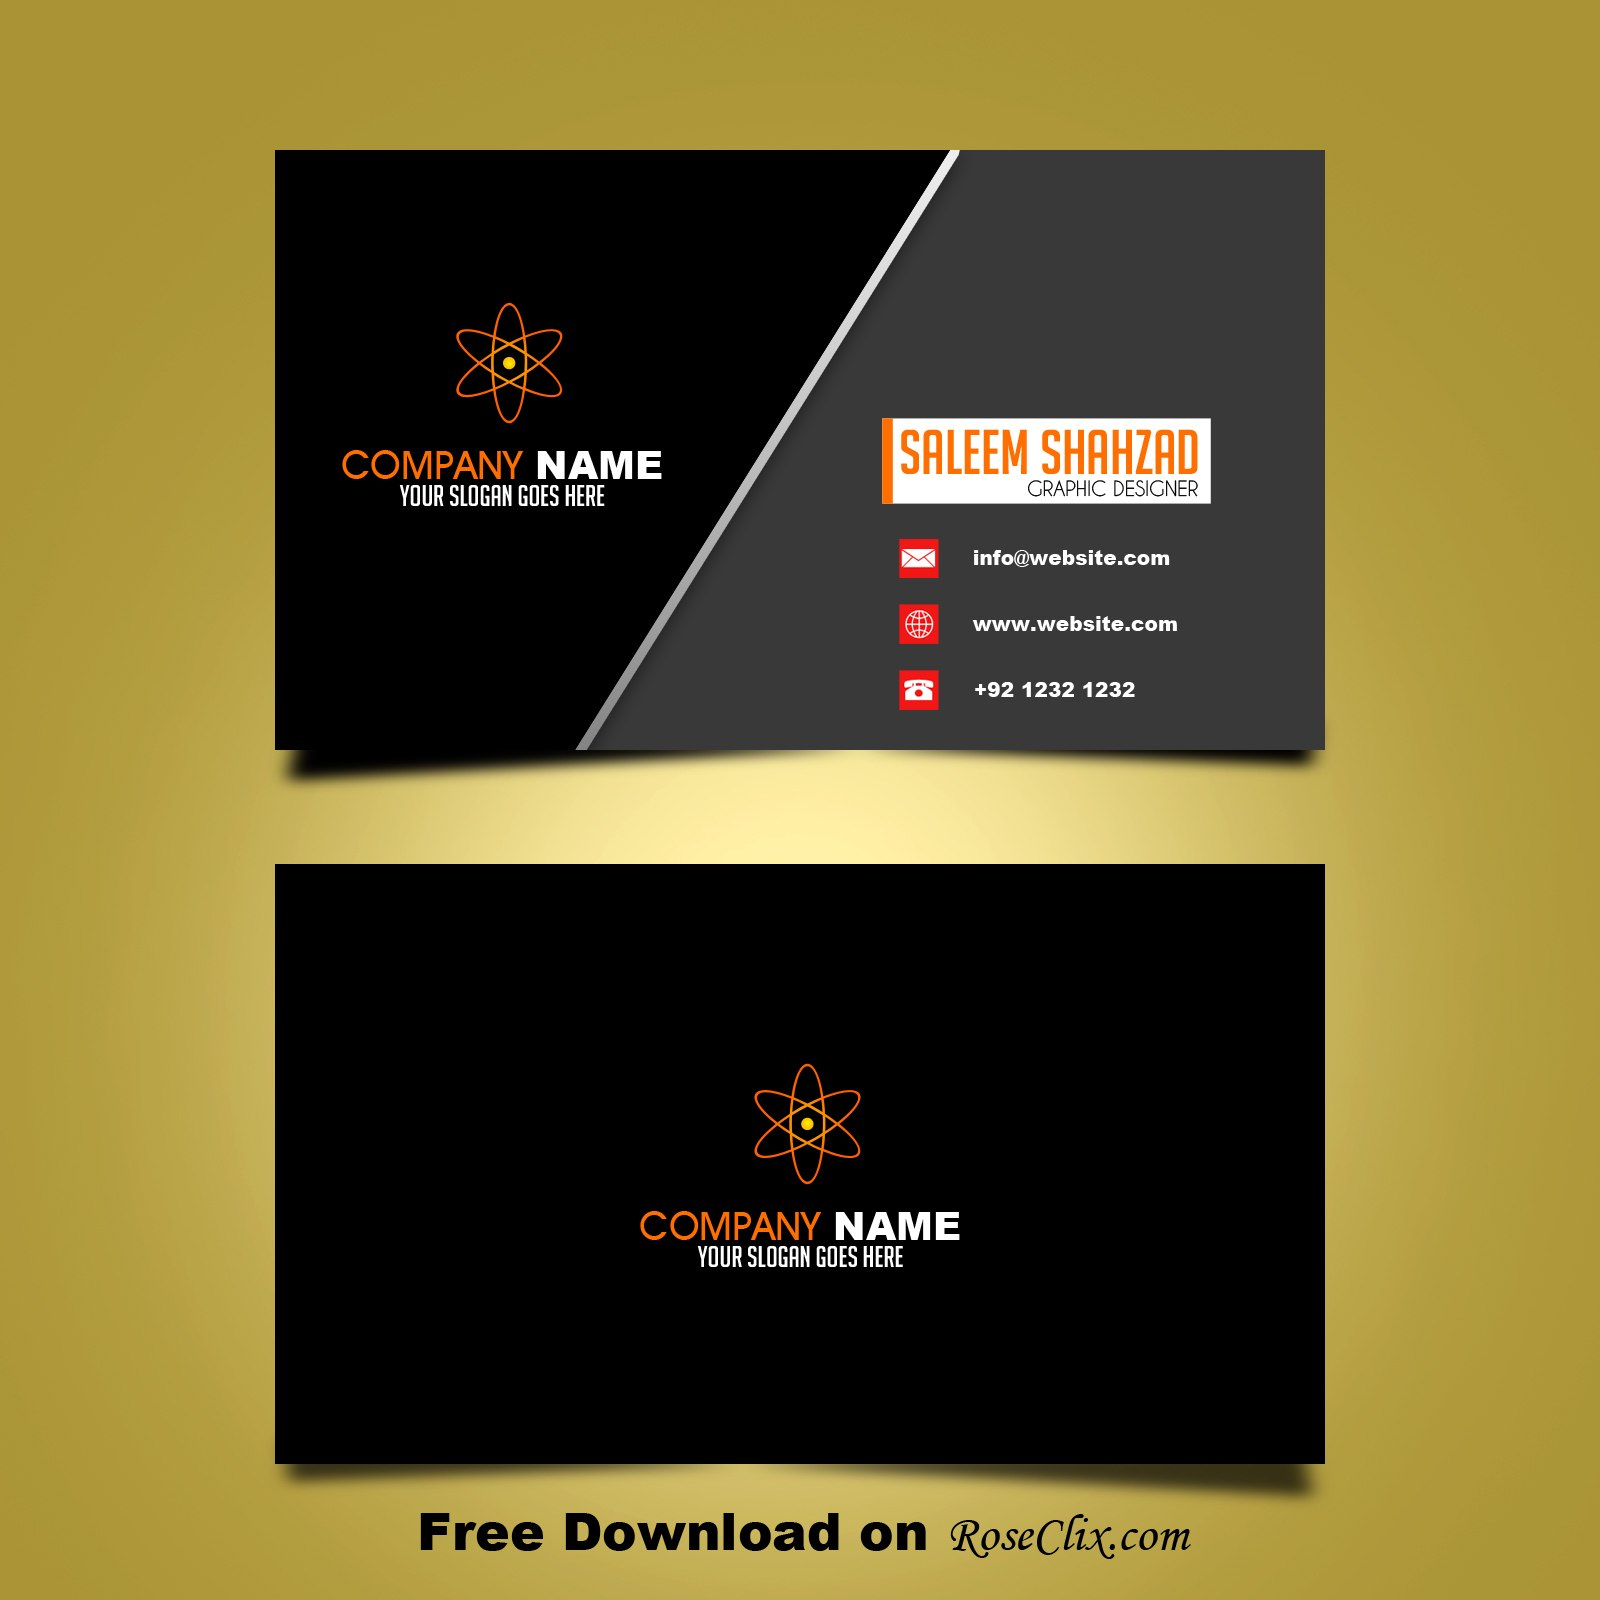 Free Downloads Business Cards Templates Template Ideas  Gall Within Templates For Visiting Cards Free Downloads